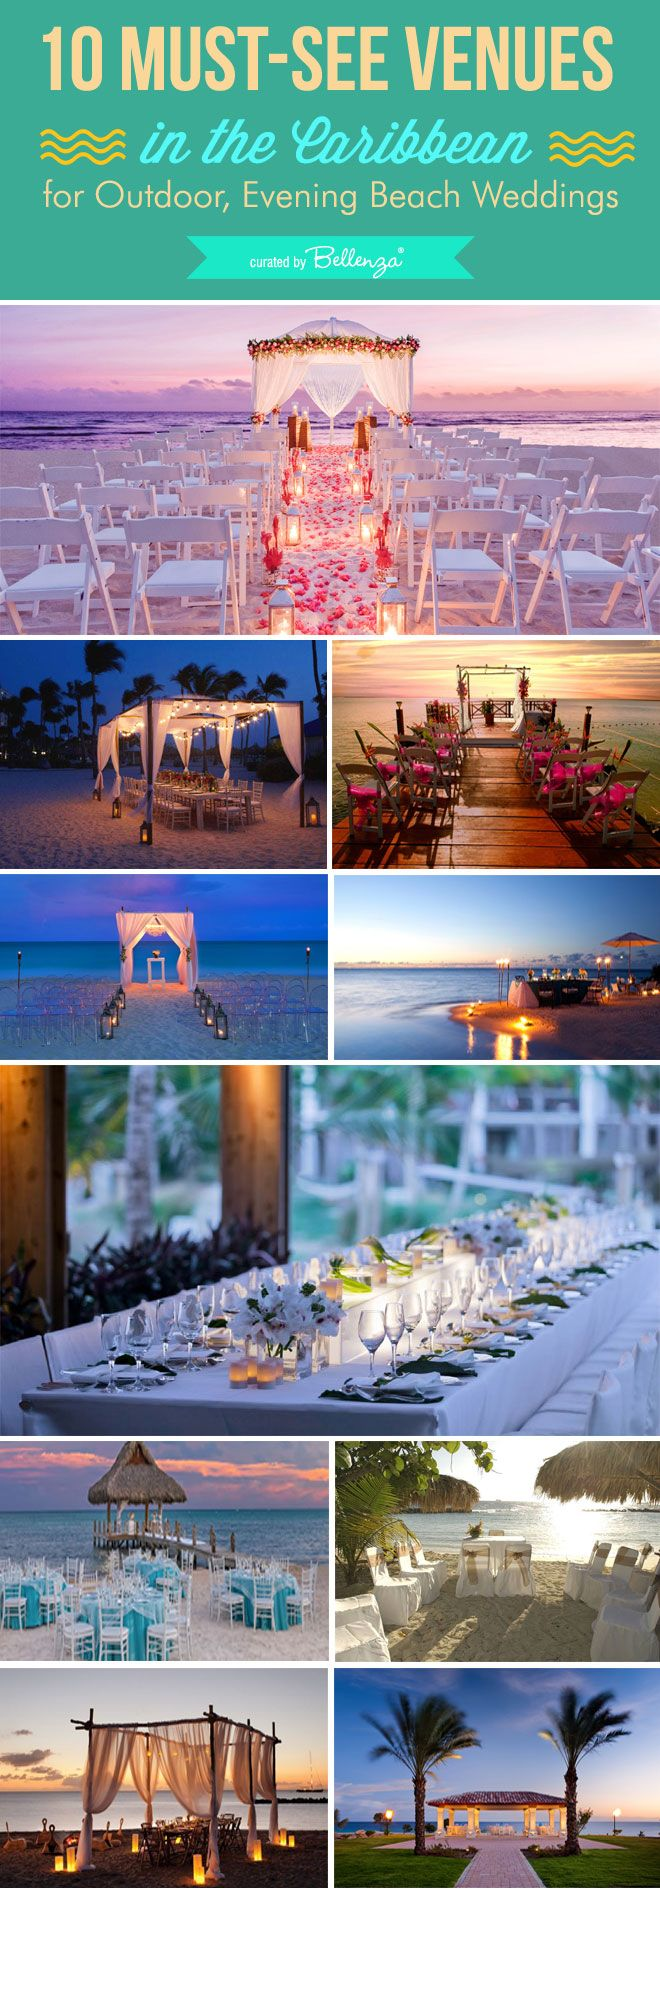 10 Must-See Caribbean Venues for Outdoor, Evening Beach Weddings